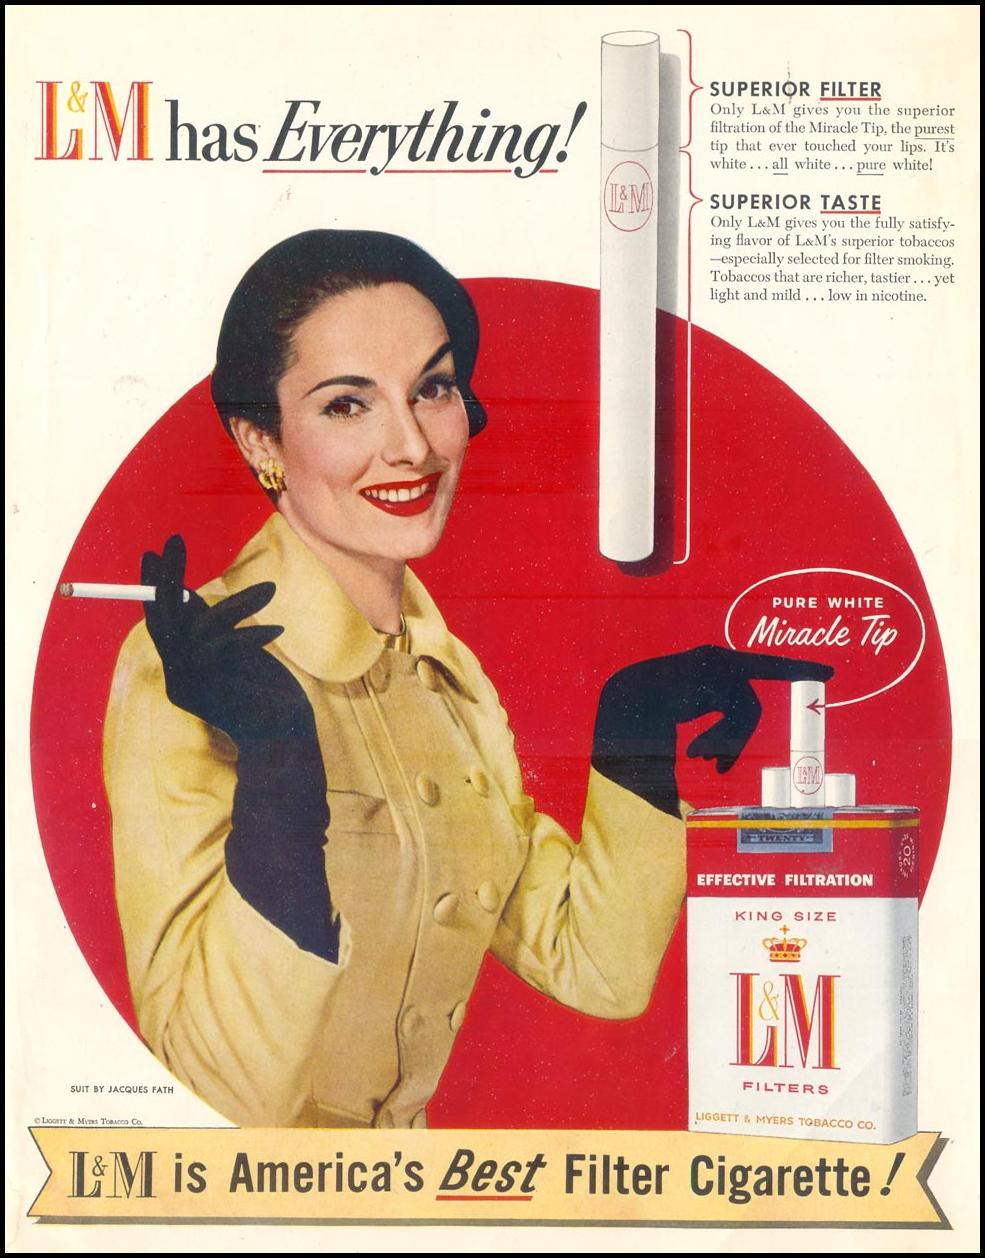 L & M CIGARETTES SATURDAY EVENING POST 09/10/1955 INSIDE BACK